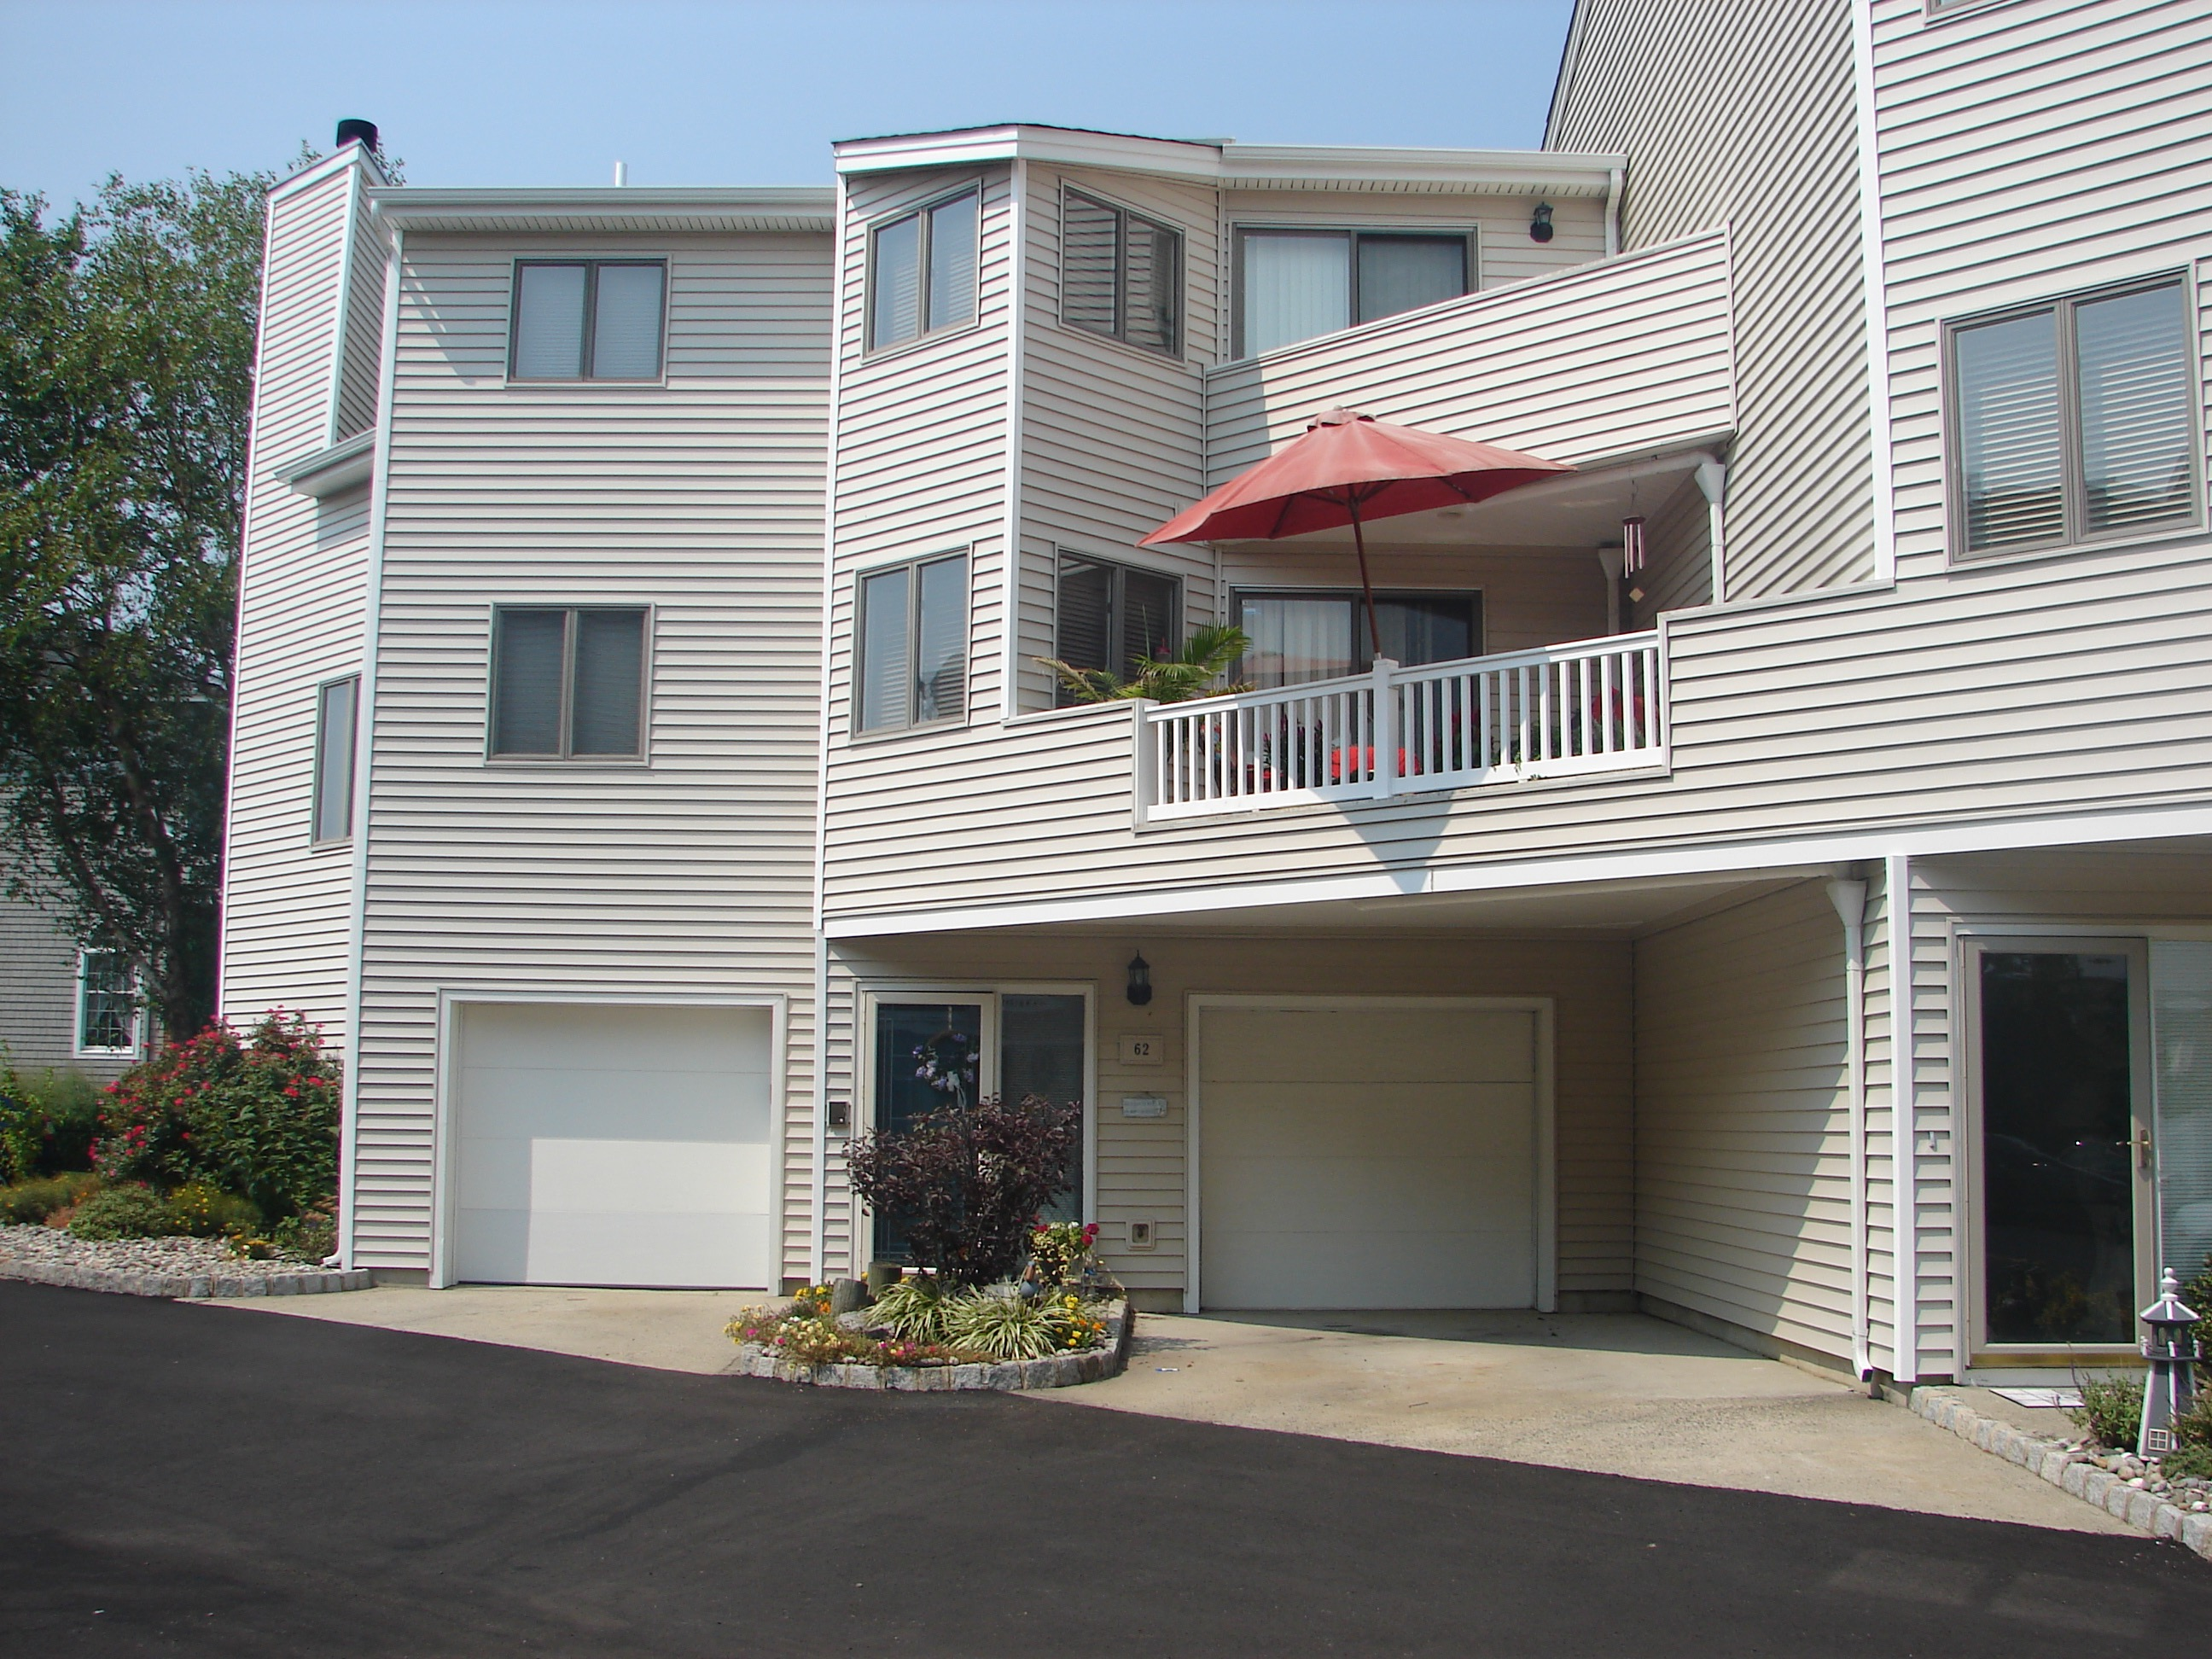 Condominium for Sale at 62 Sunset Ave Long Branch, New Jersey 07740 United States